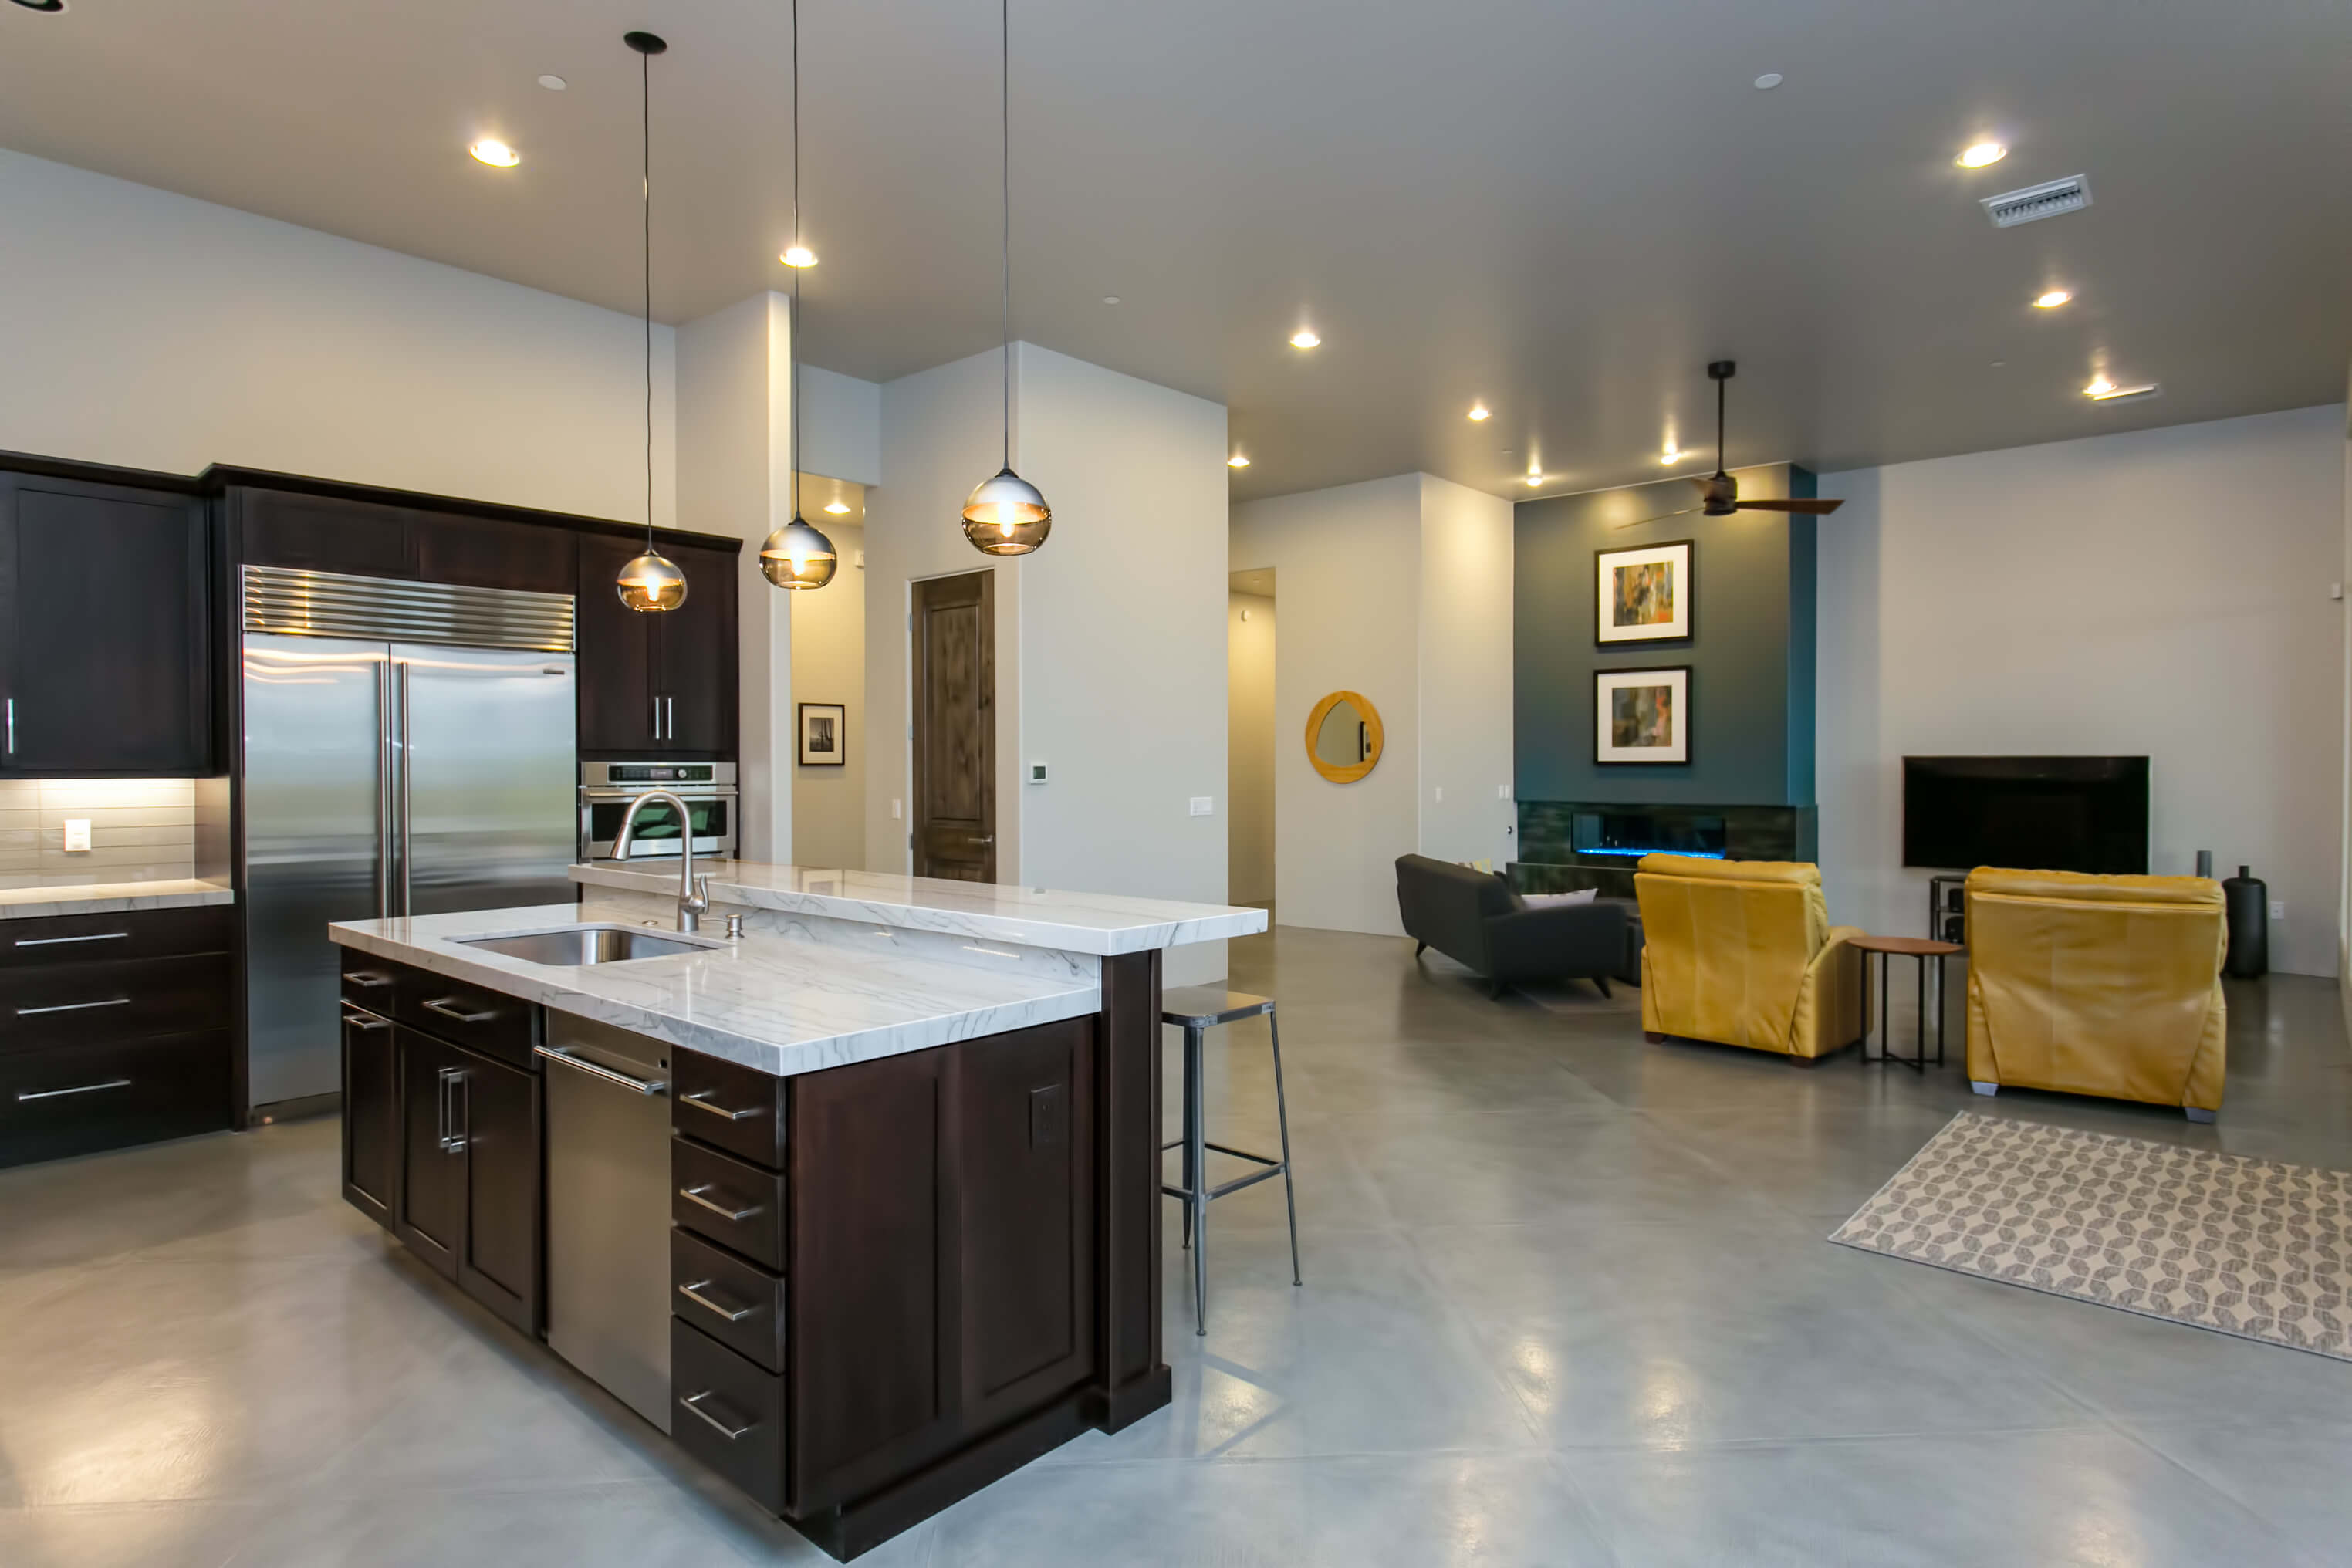 A look at the latest trends in kitchen design southwest for New trends in kitchen design